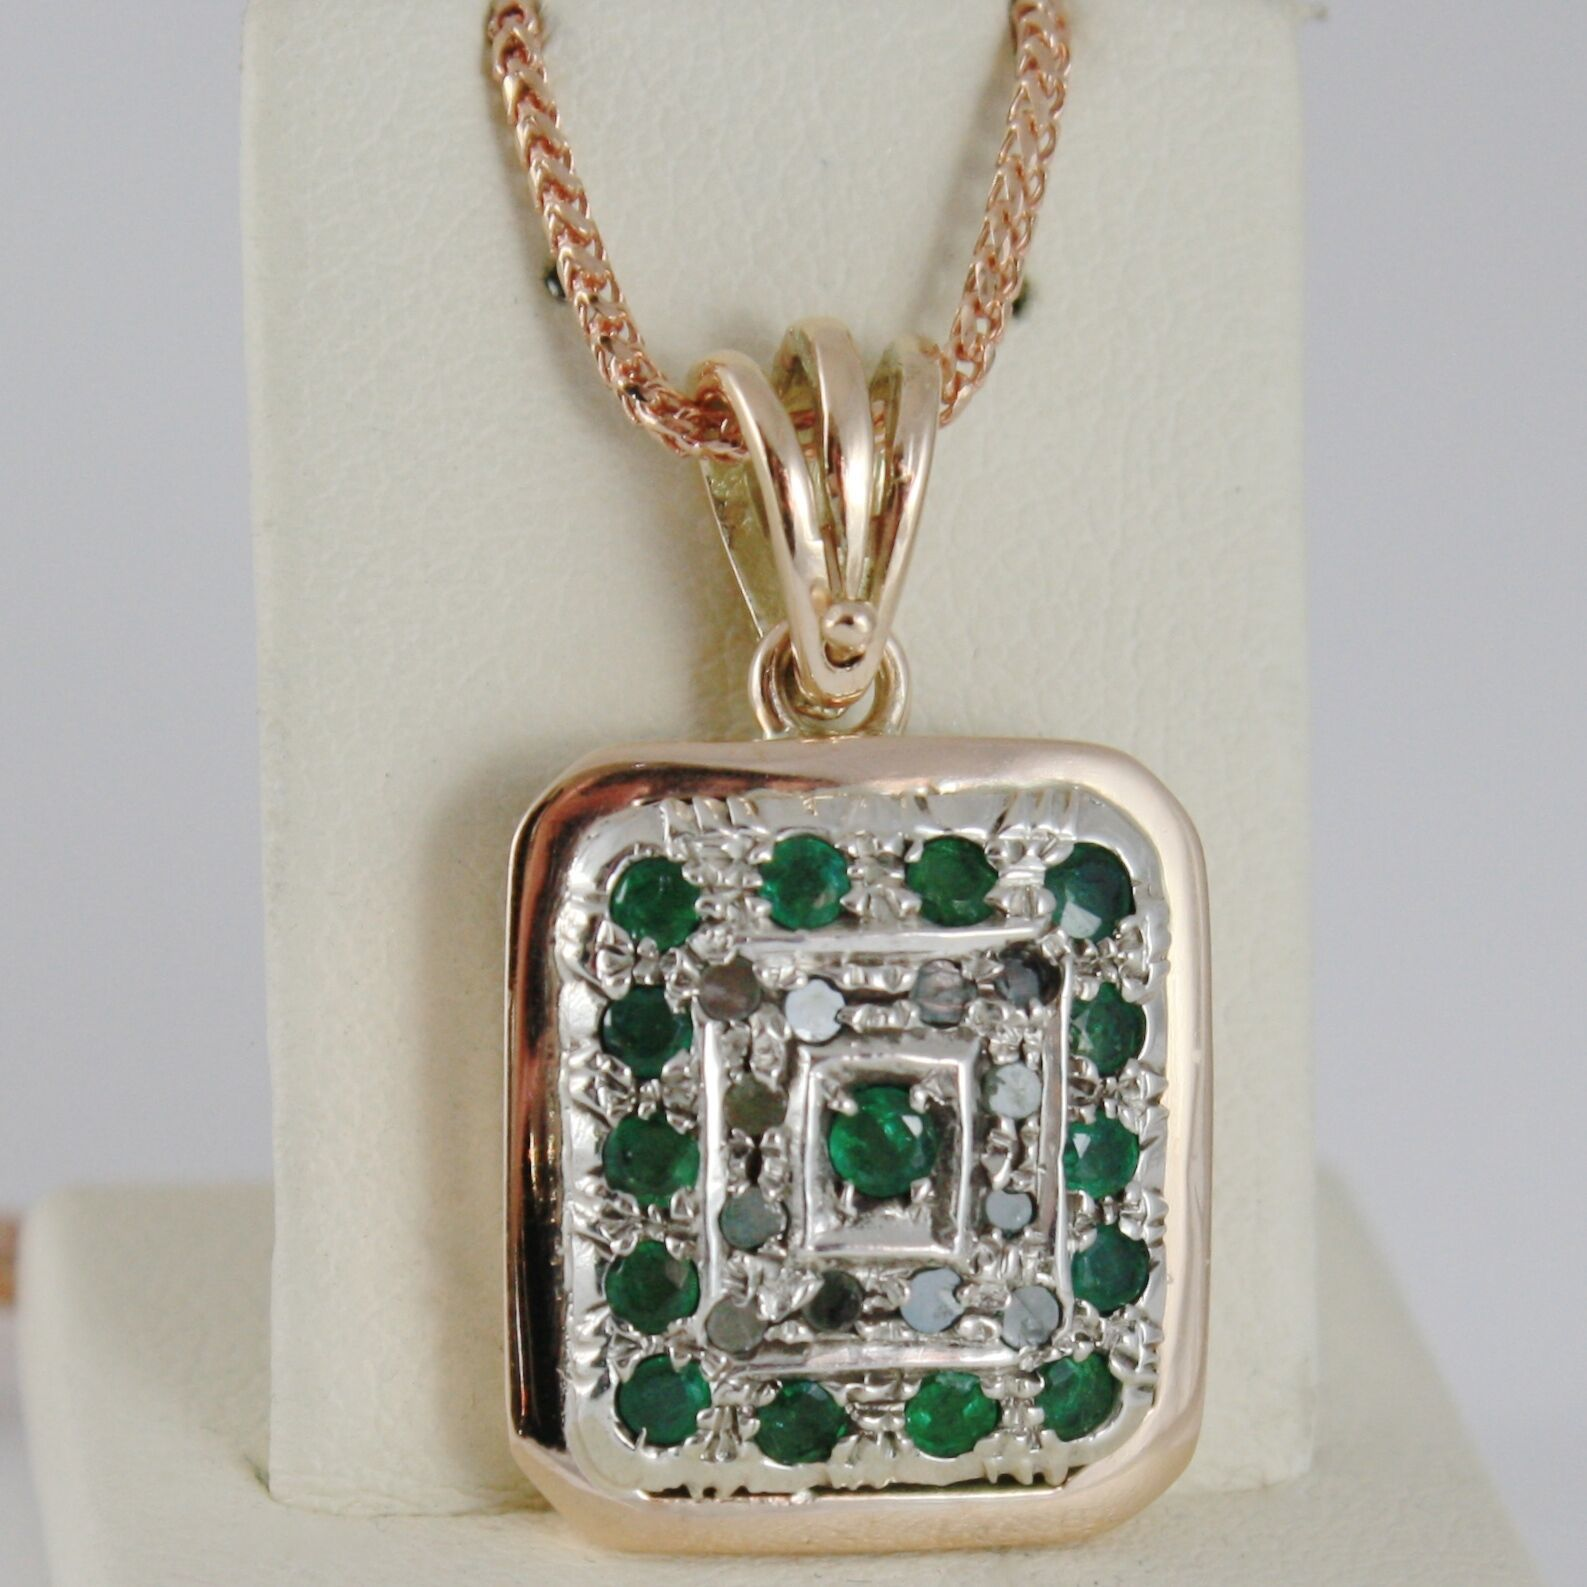 SOLID 18K ROSE WHITE GOLD MEDALLION DIAMOND EMERALD PENDANT NECKLACE WITH CHAIN